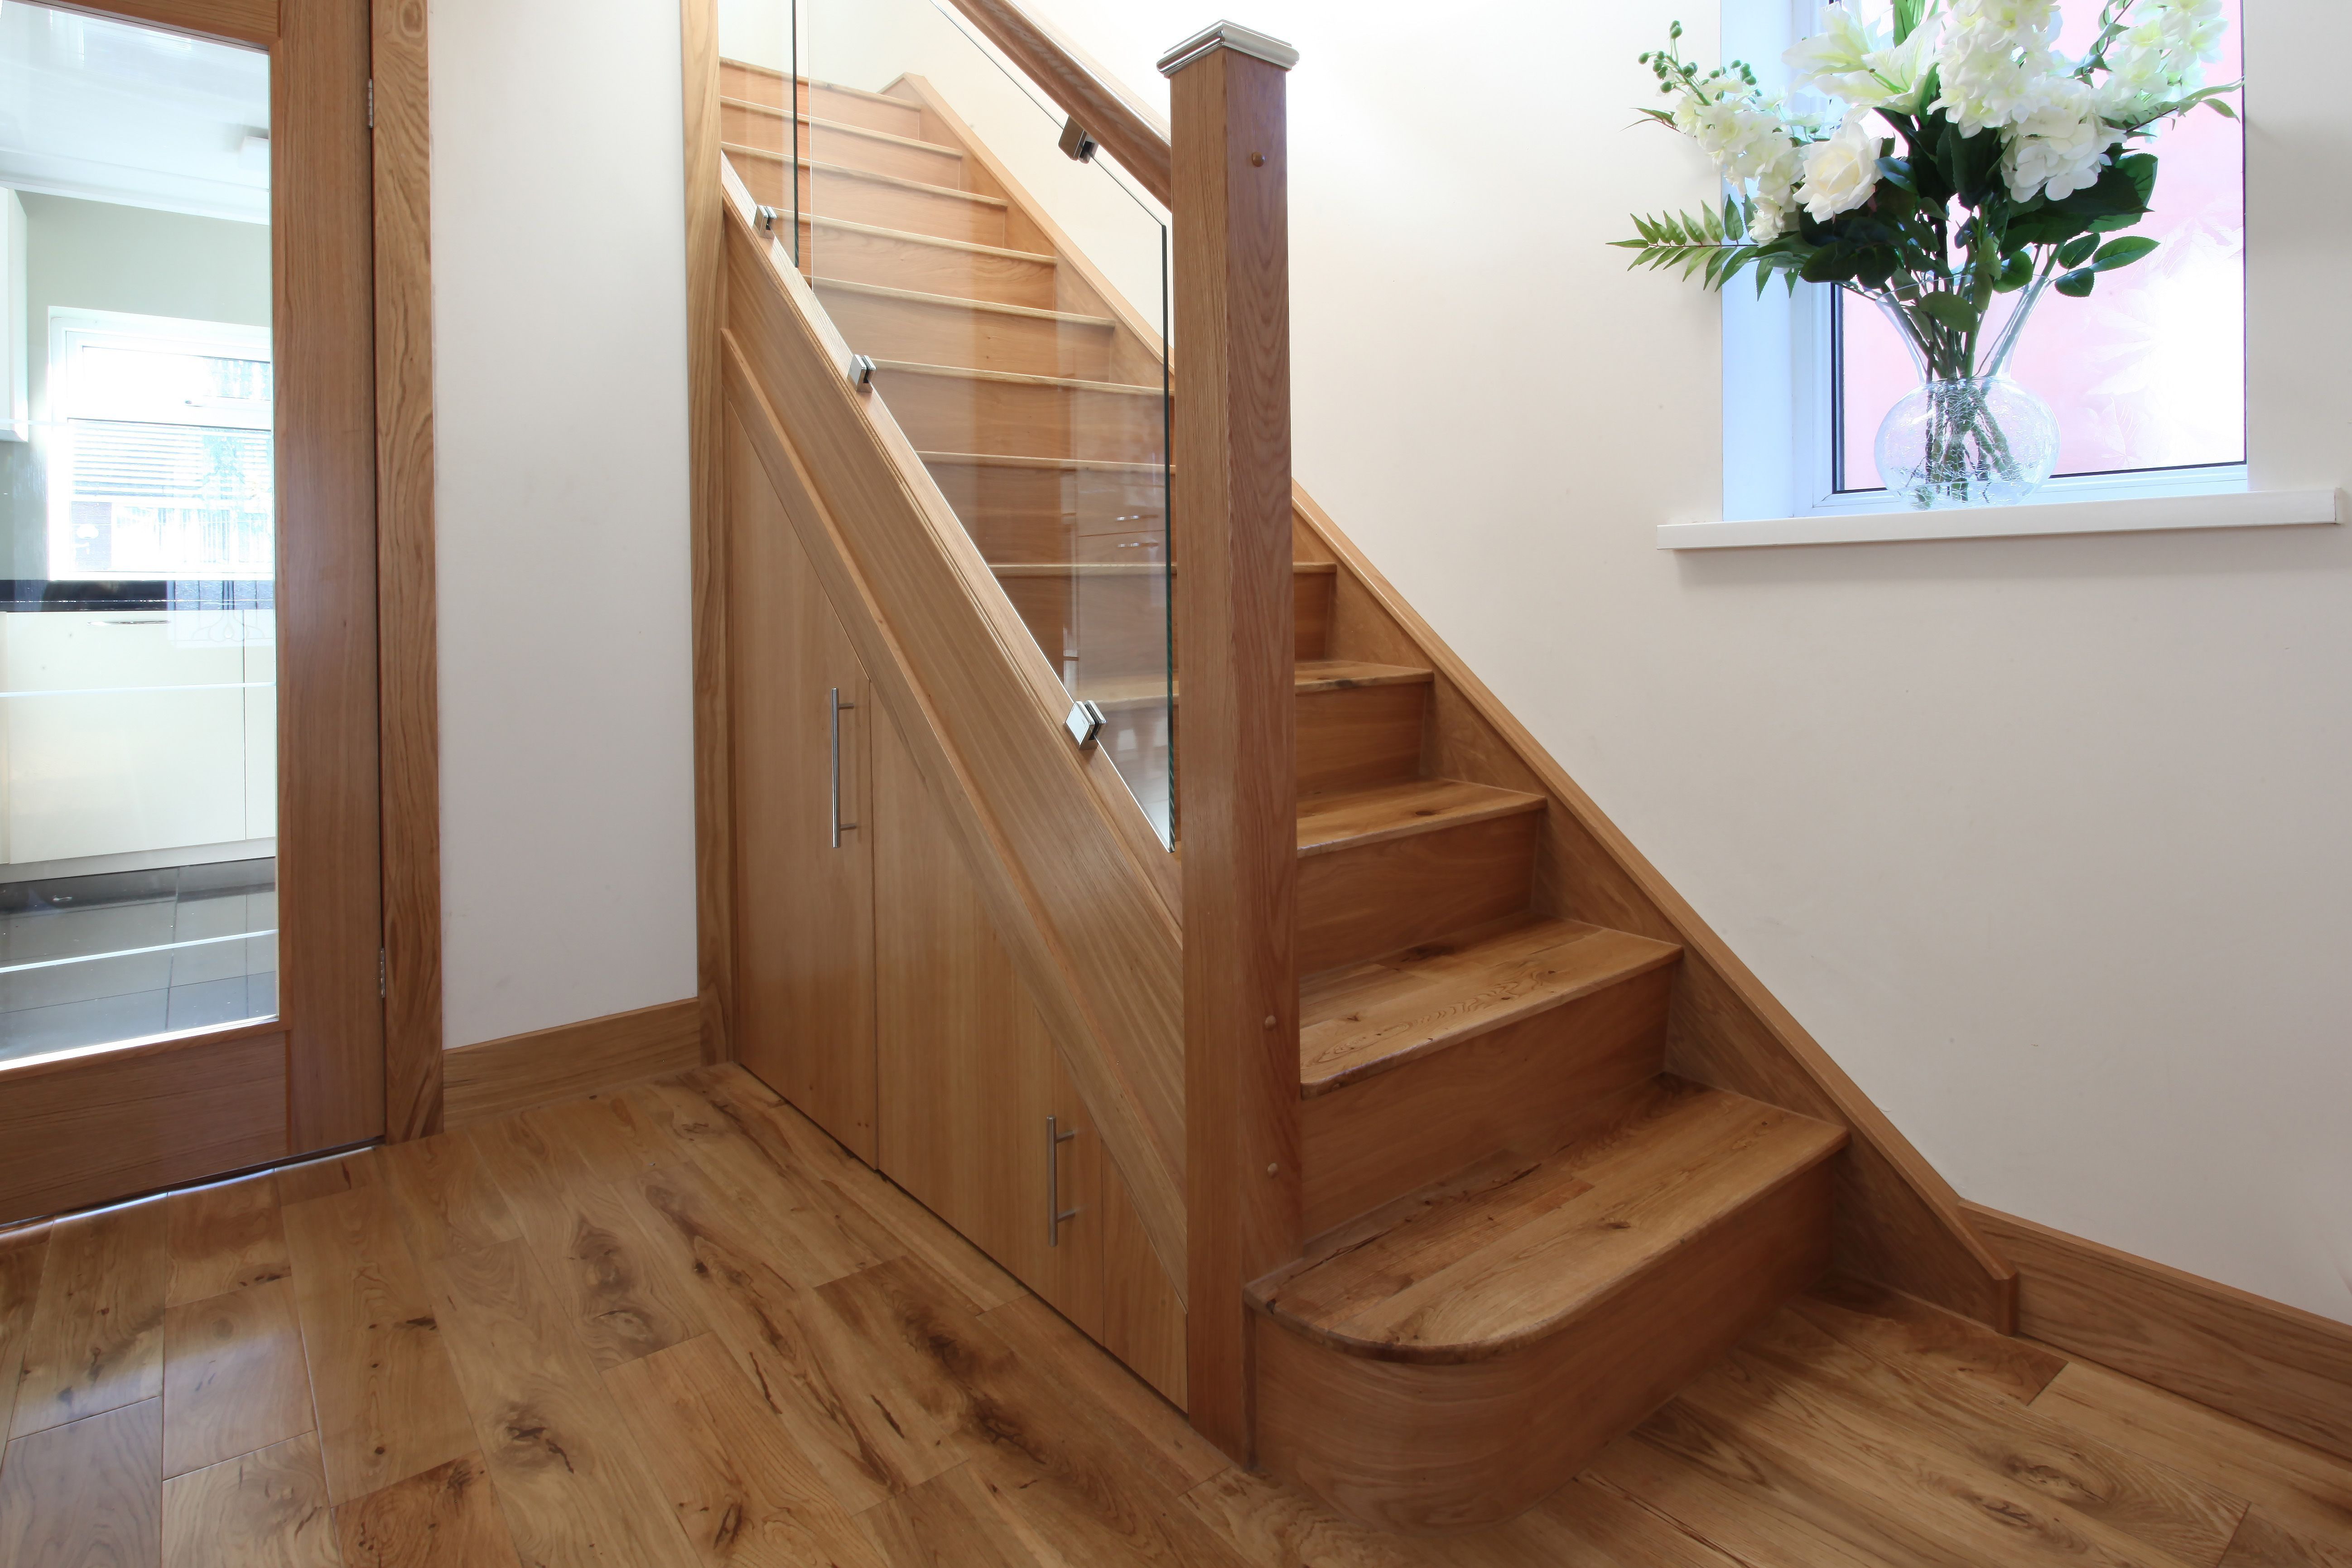 Kit Renovation Staircase We Installed A Staircase Renovation Kit Over The Existing Stairs And Completed All Additional Joinery Work Ne Hall Menuiserie Et Portes